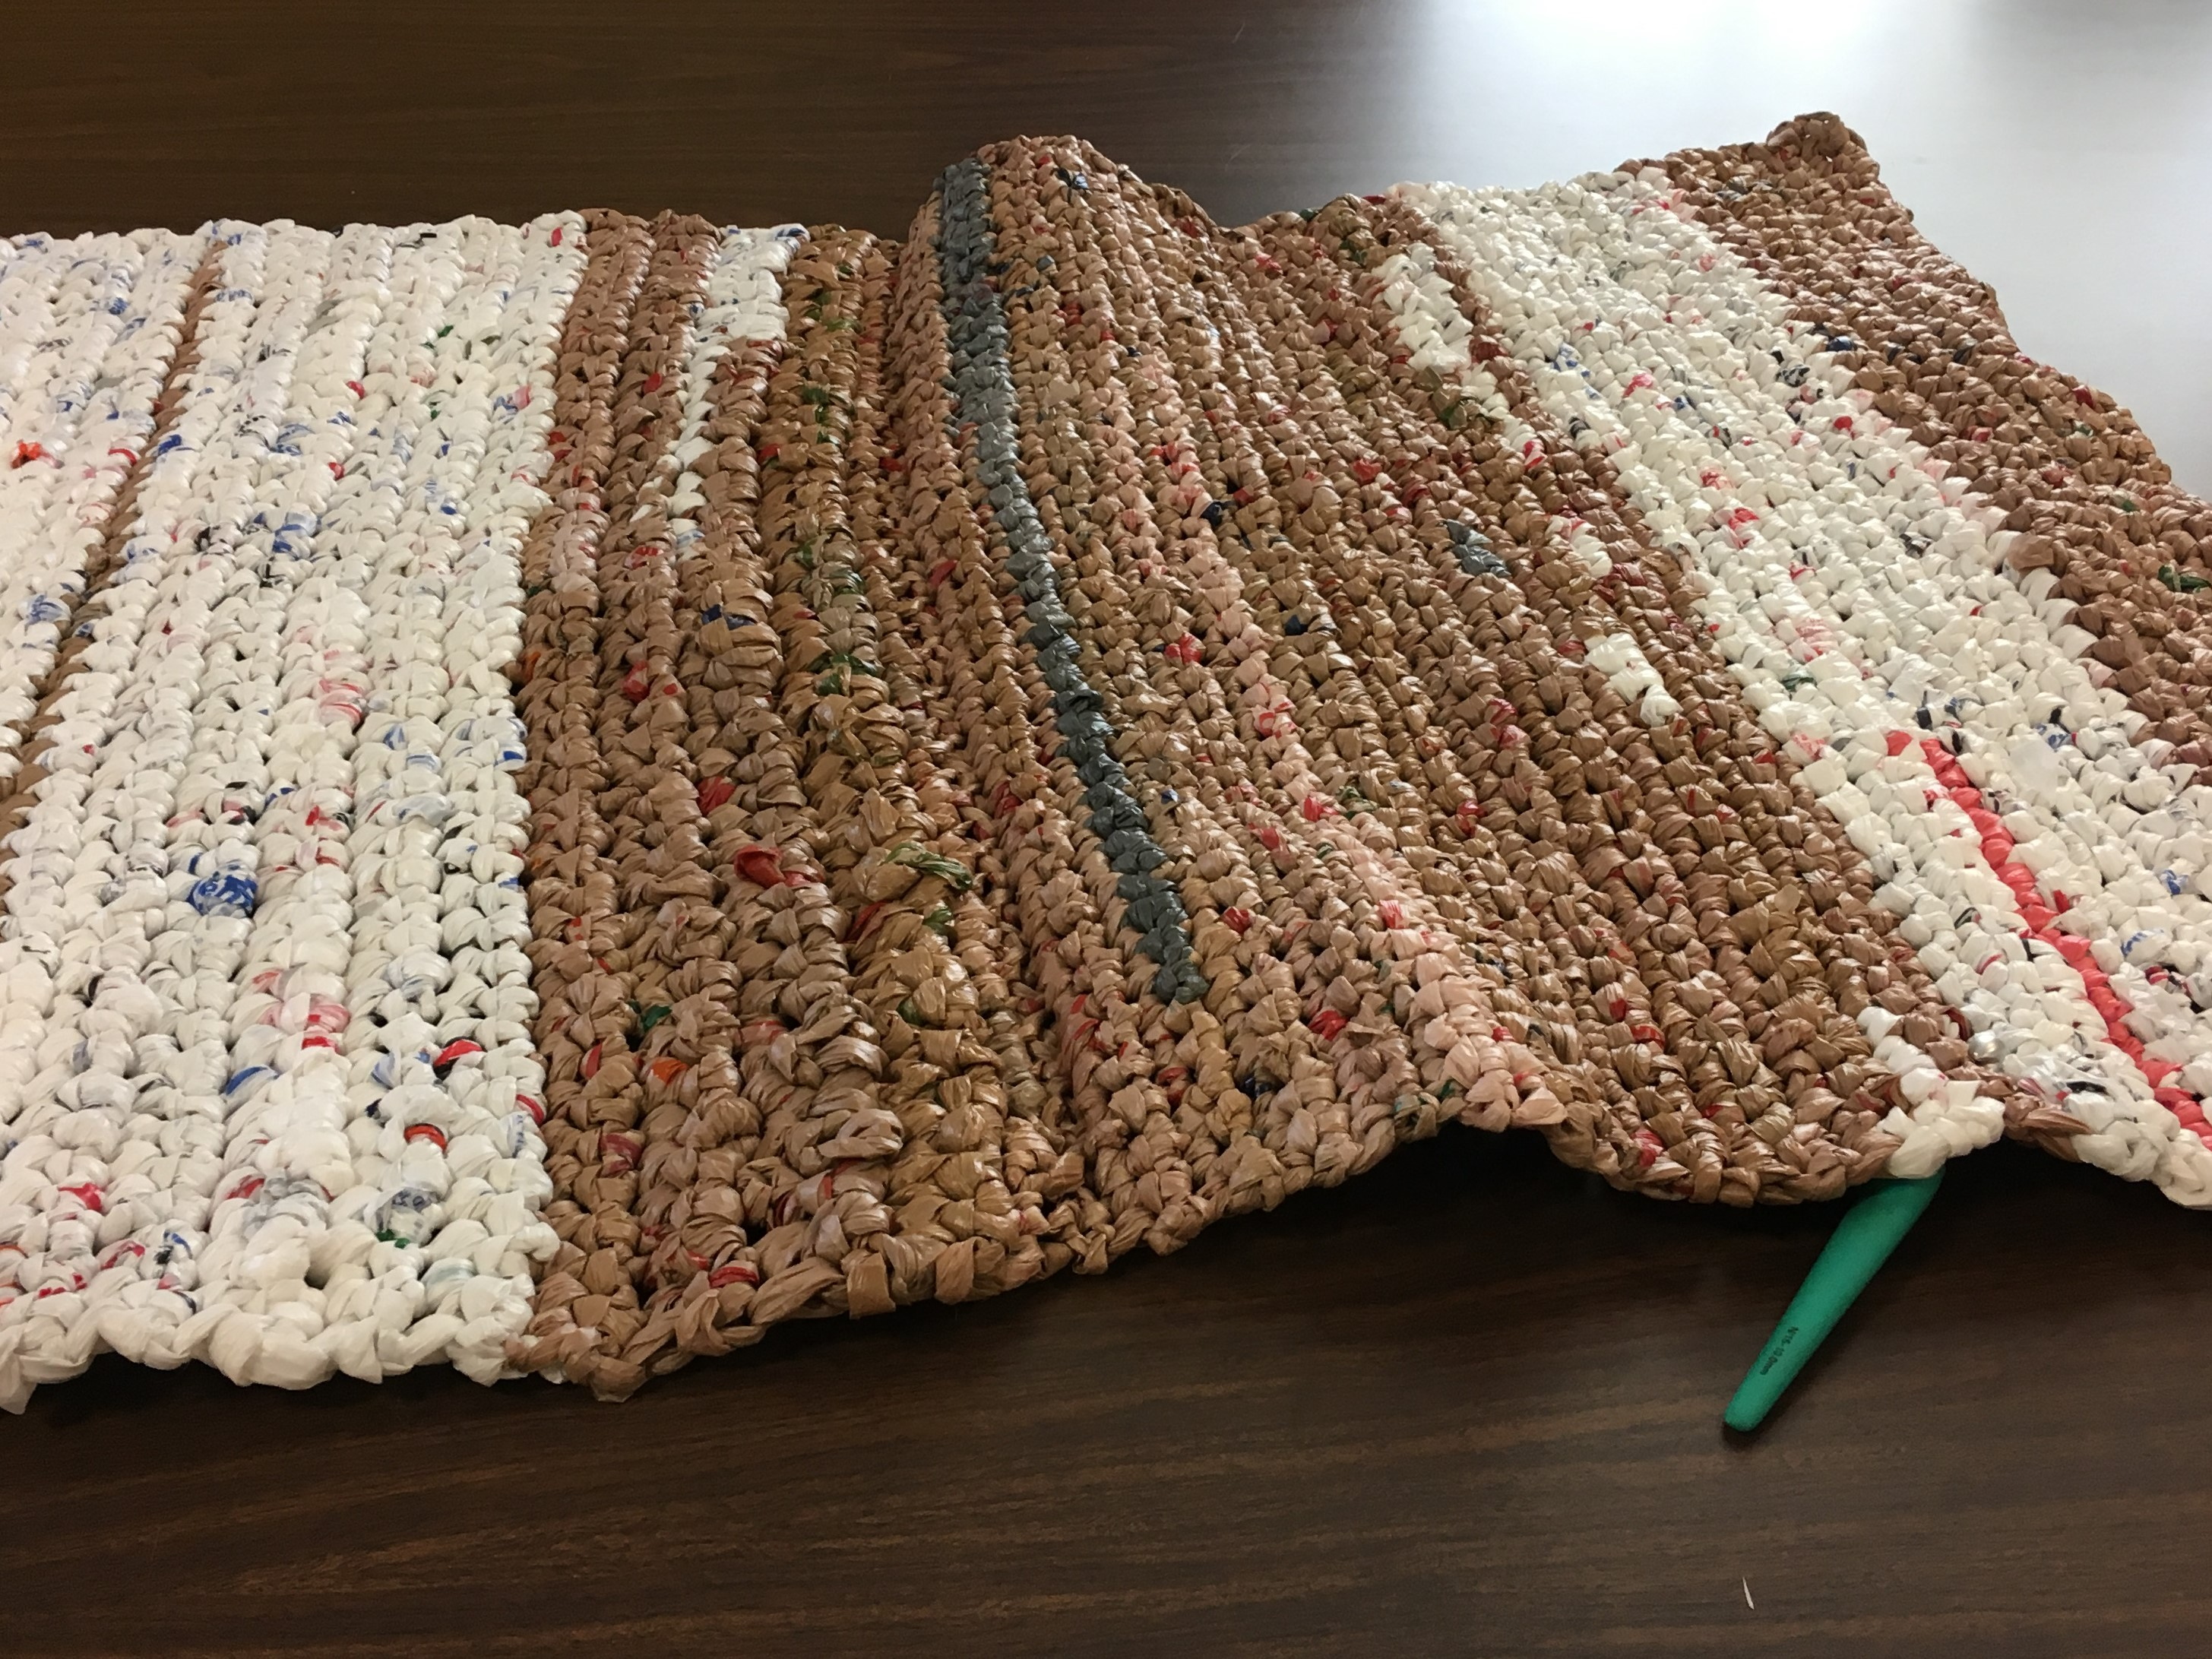 Volunteer in Mesa AZ - making sleeping mats for the homeless